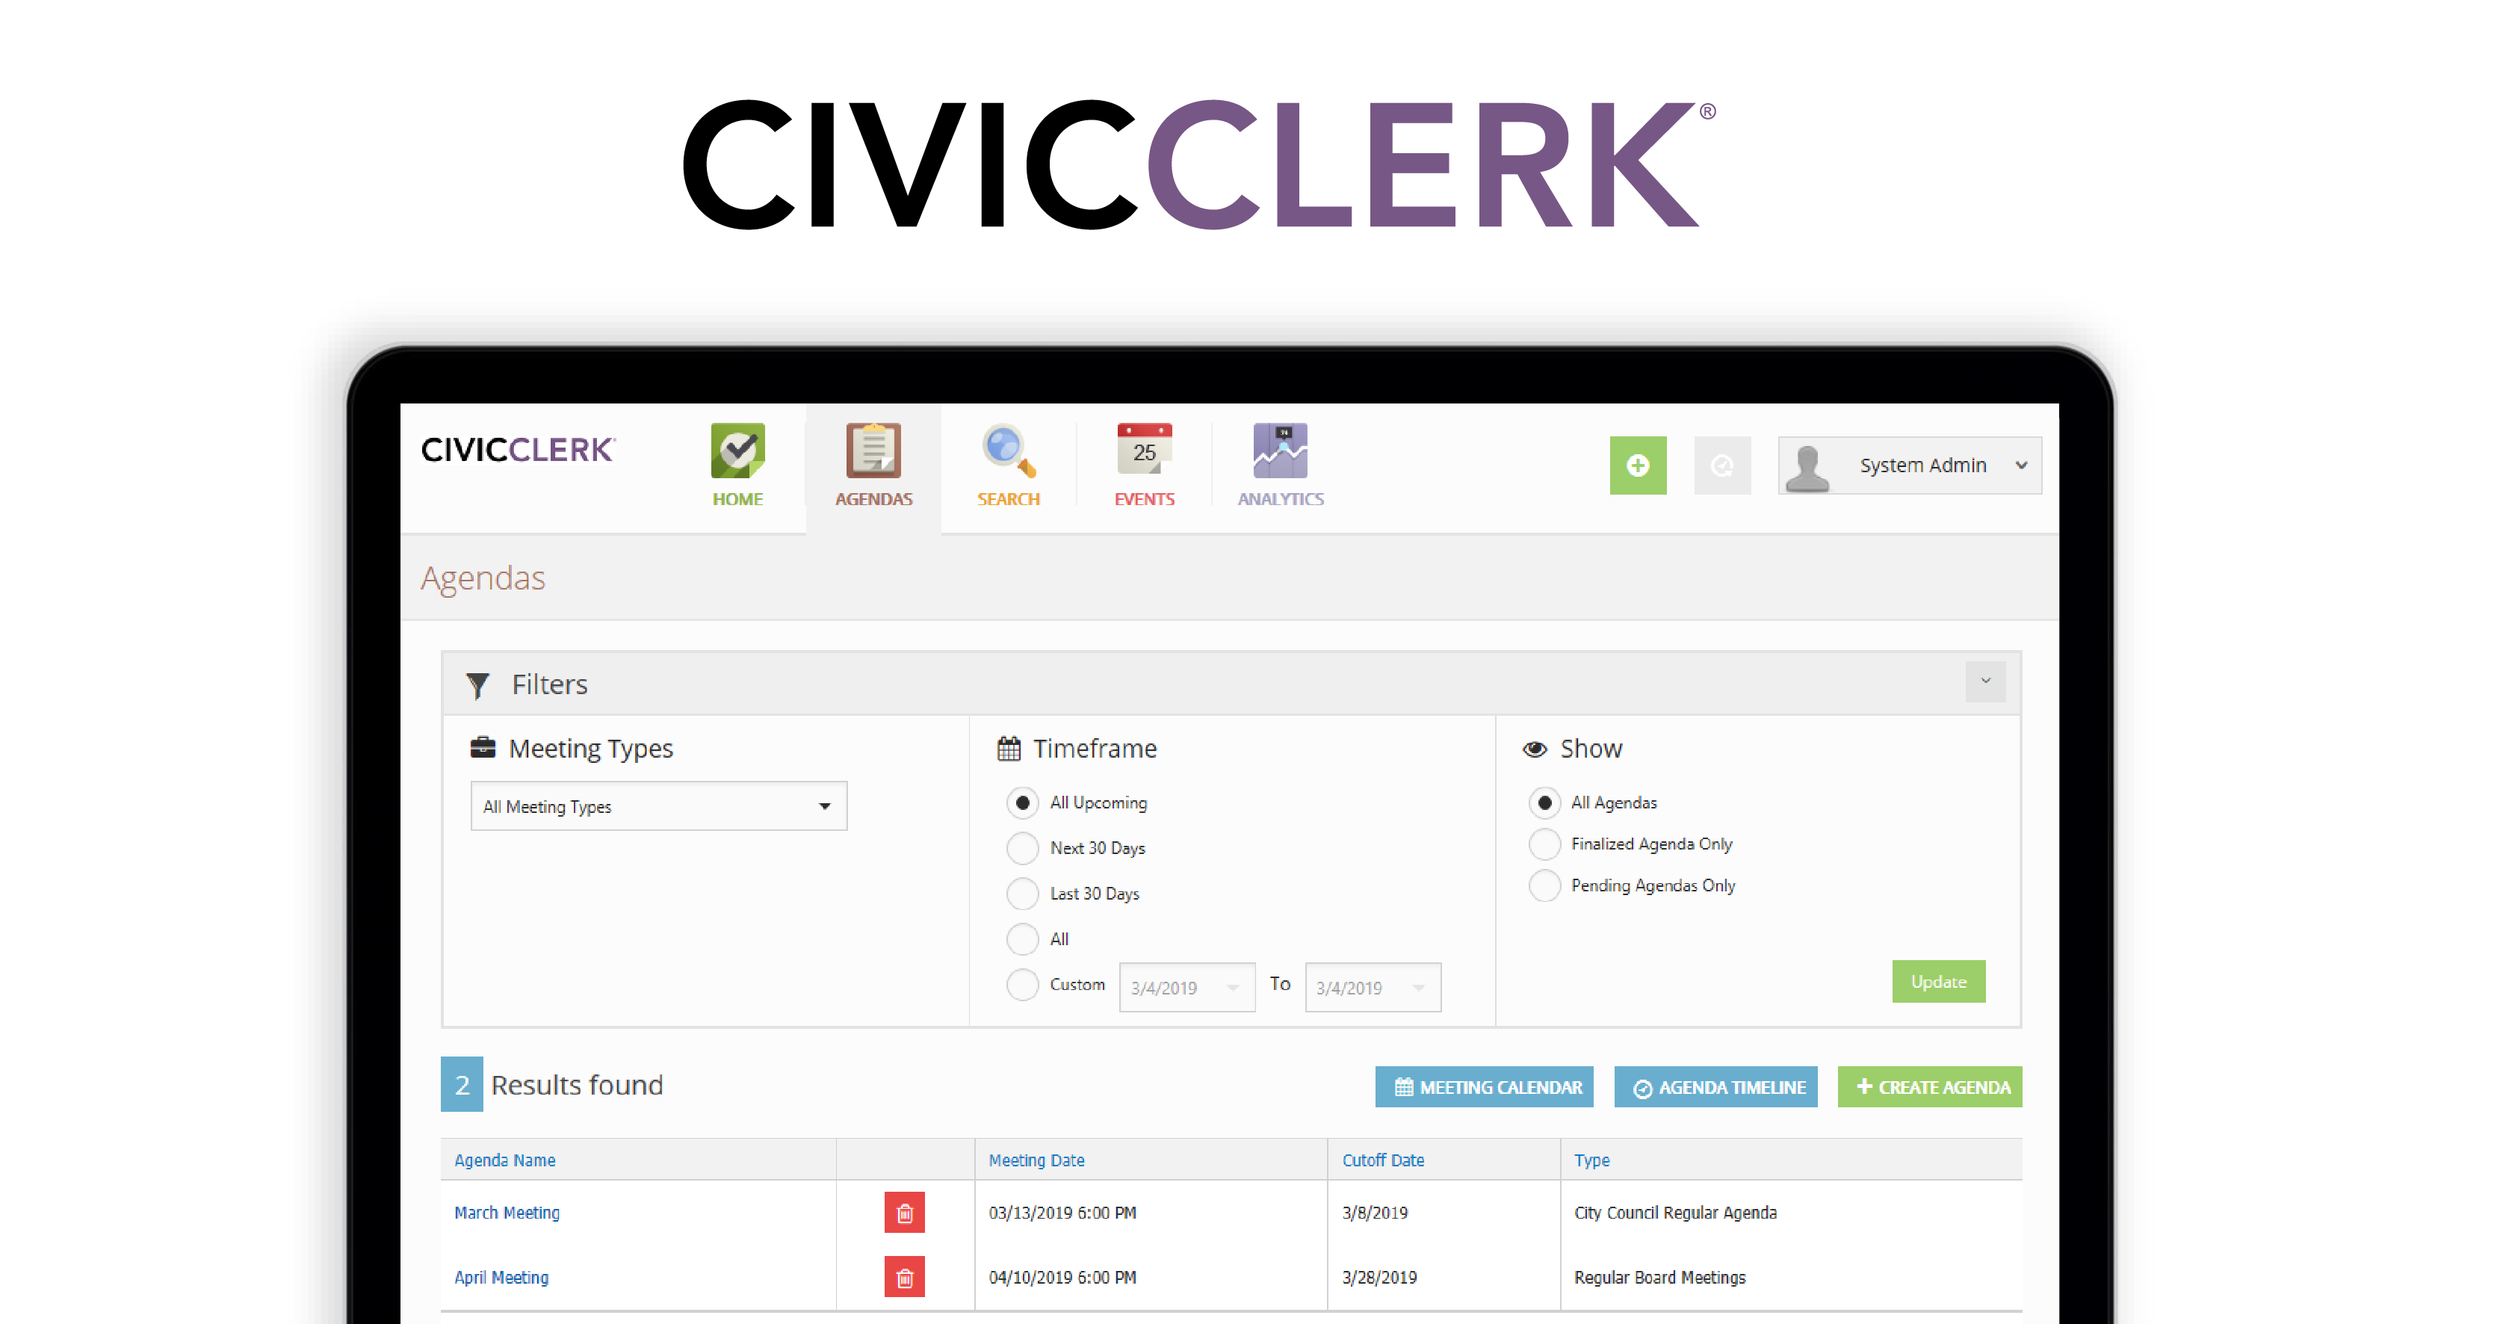 CivicClerk Agenda and Meeting Management software for local government